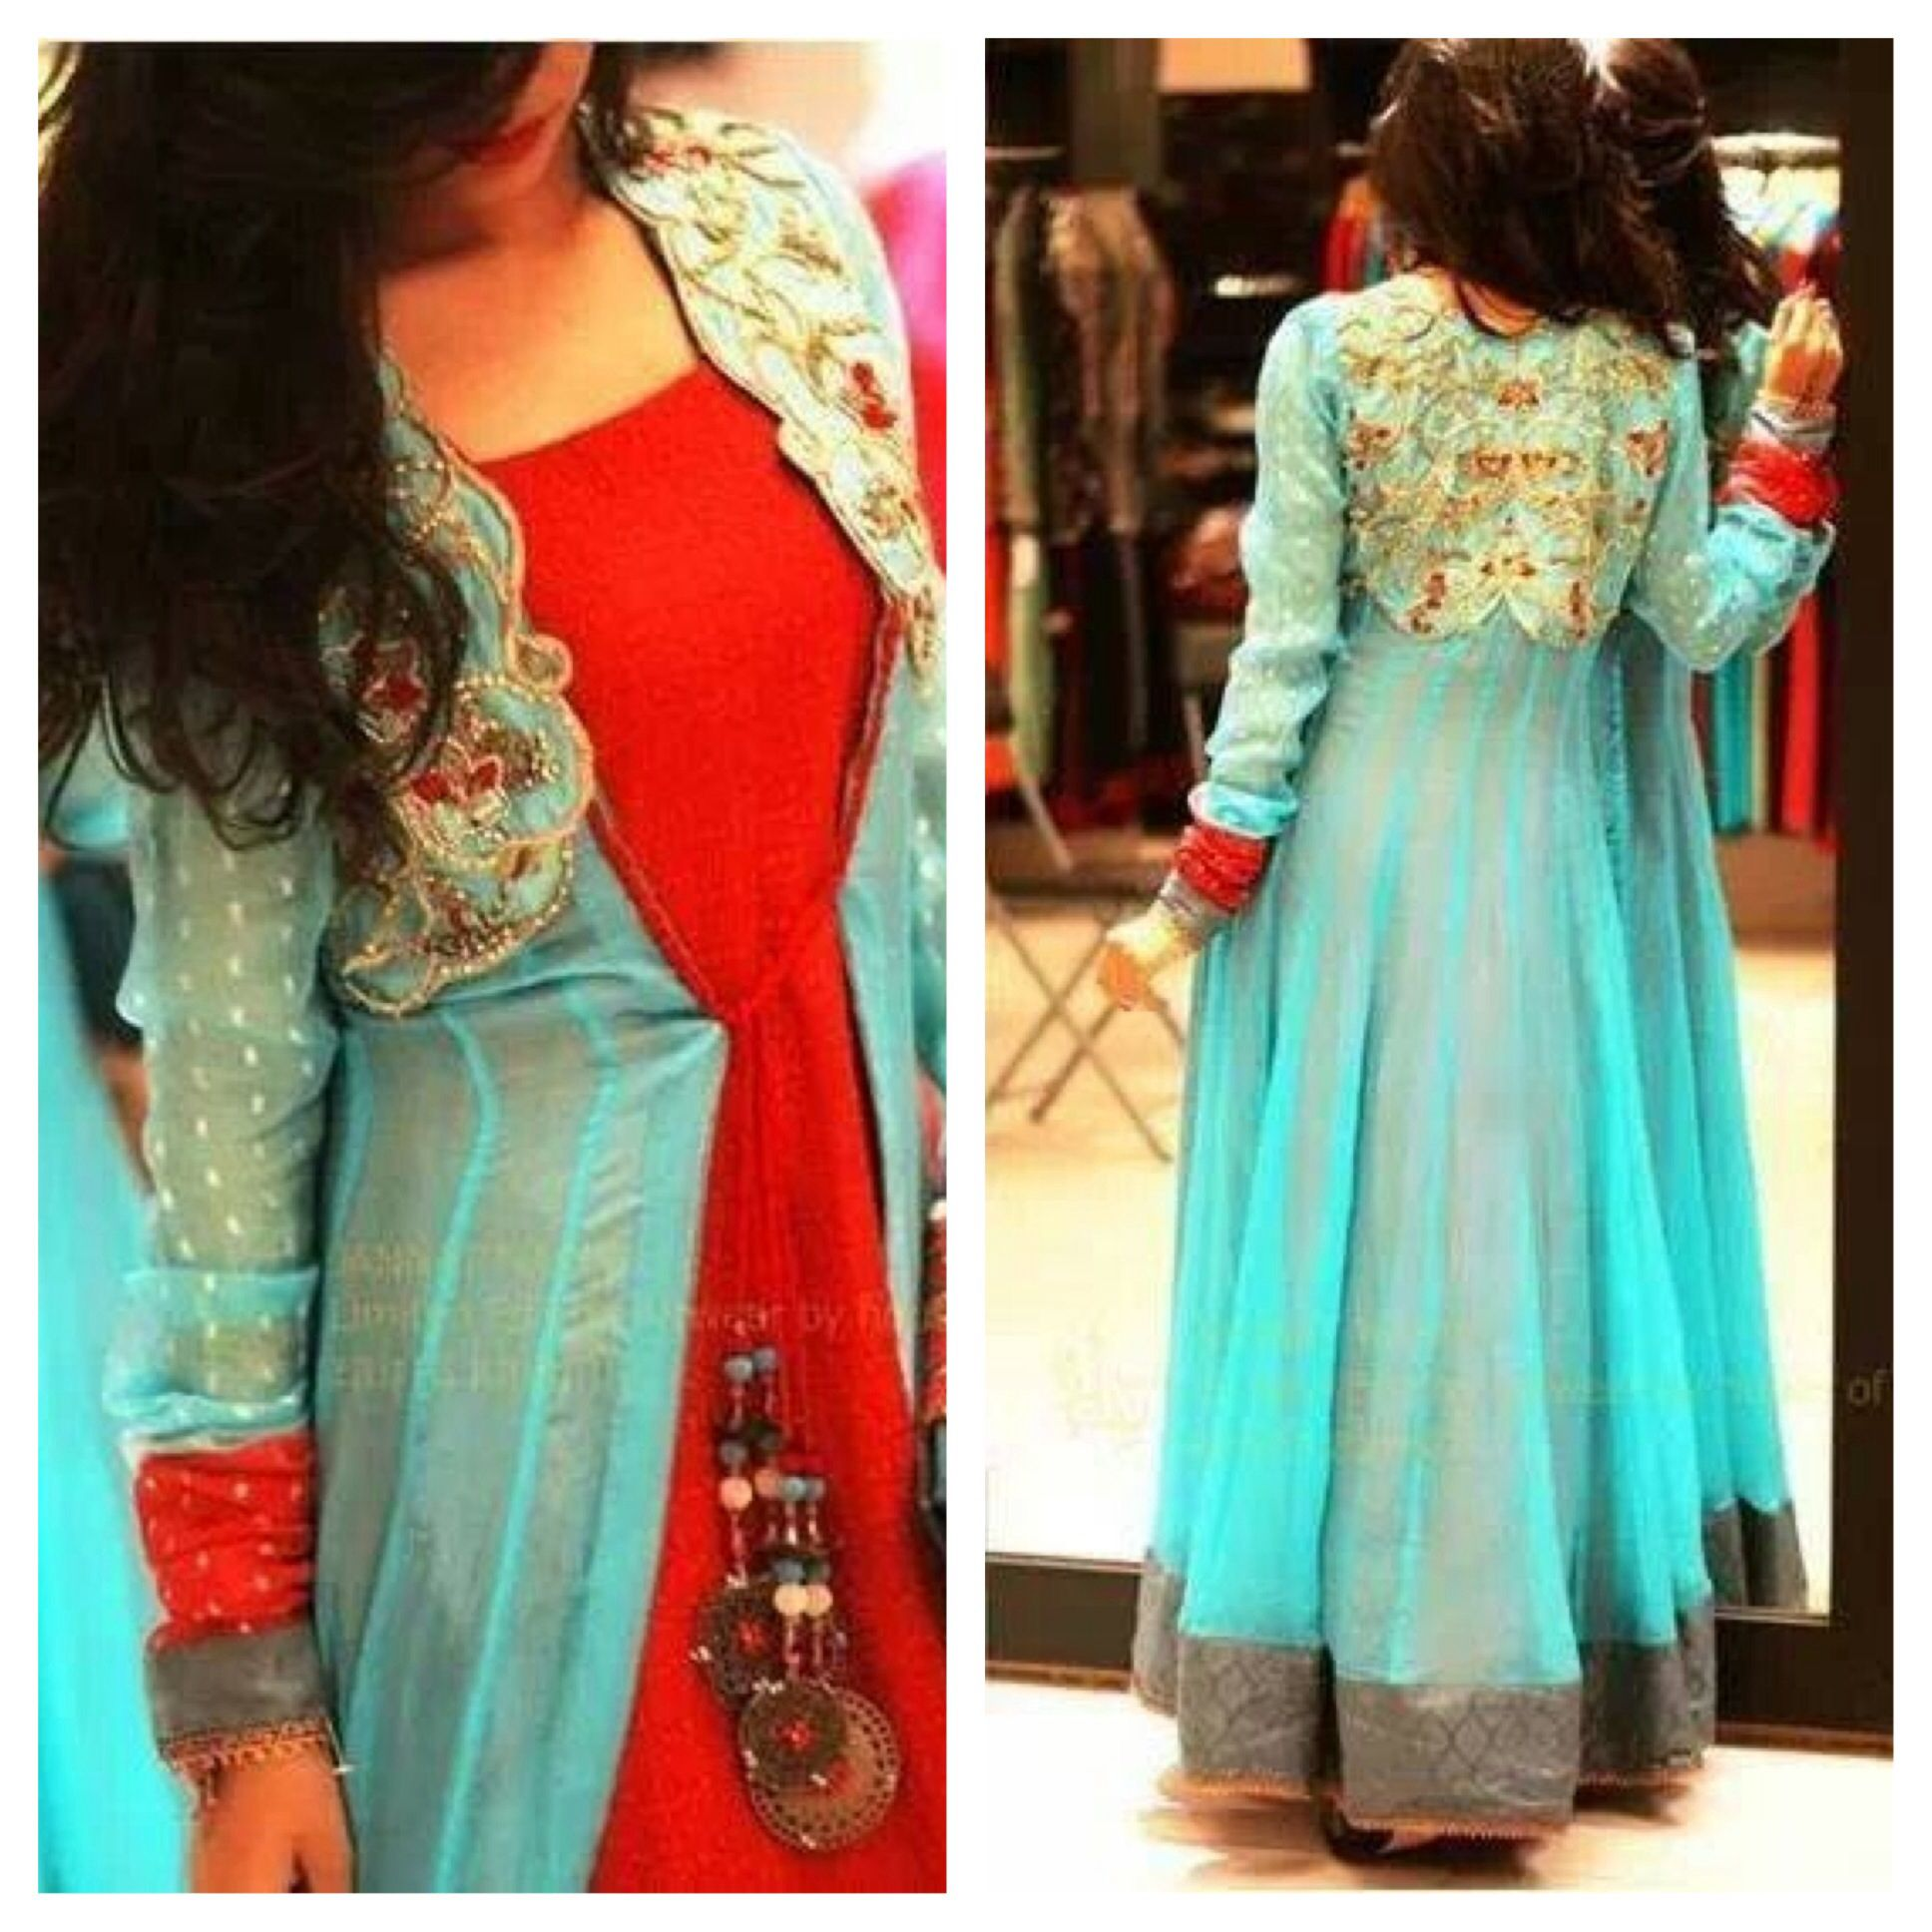 Bluered wedding outfits desi outfits pinterest desi